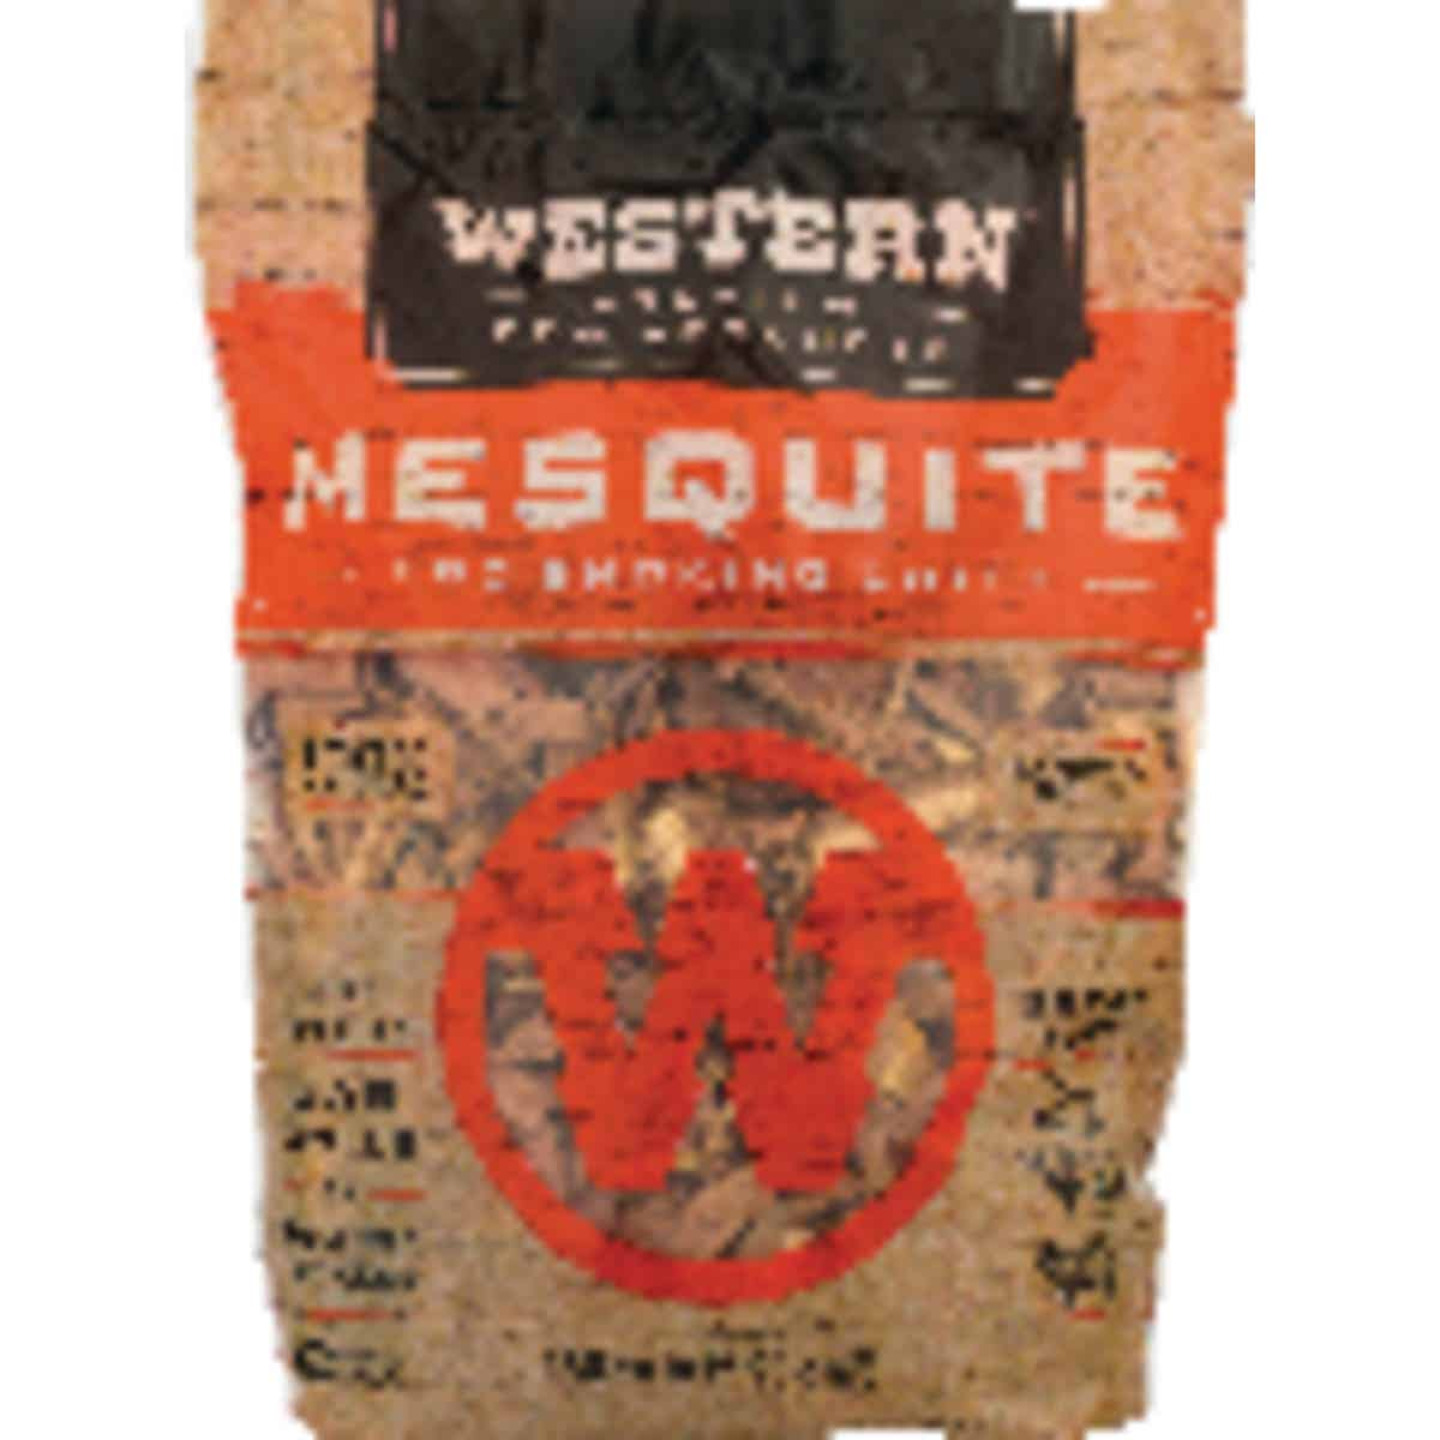 Western 2 Lb. Mesquite Wood Smoking Chips Image 3